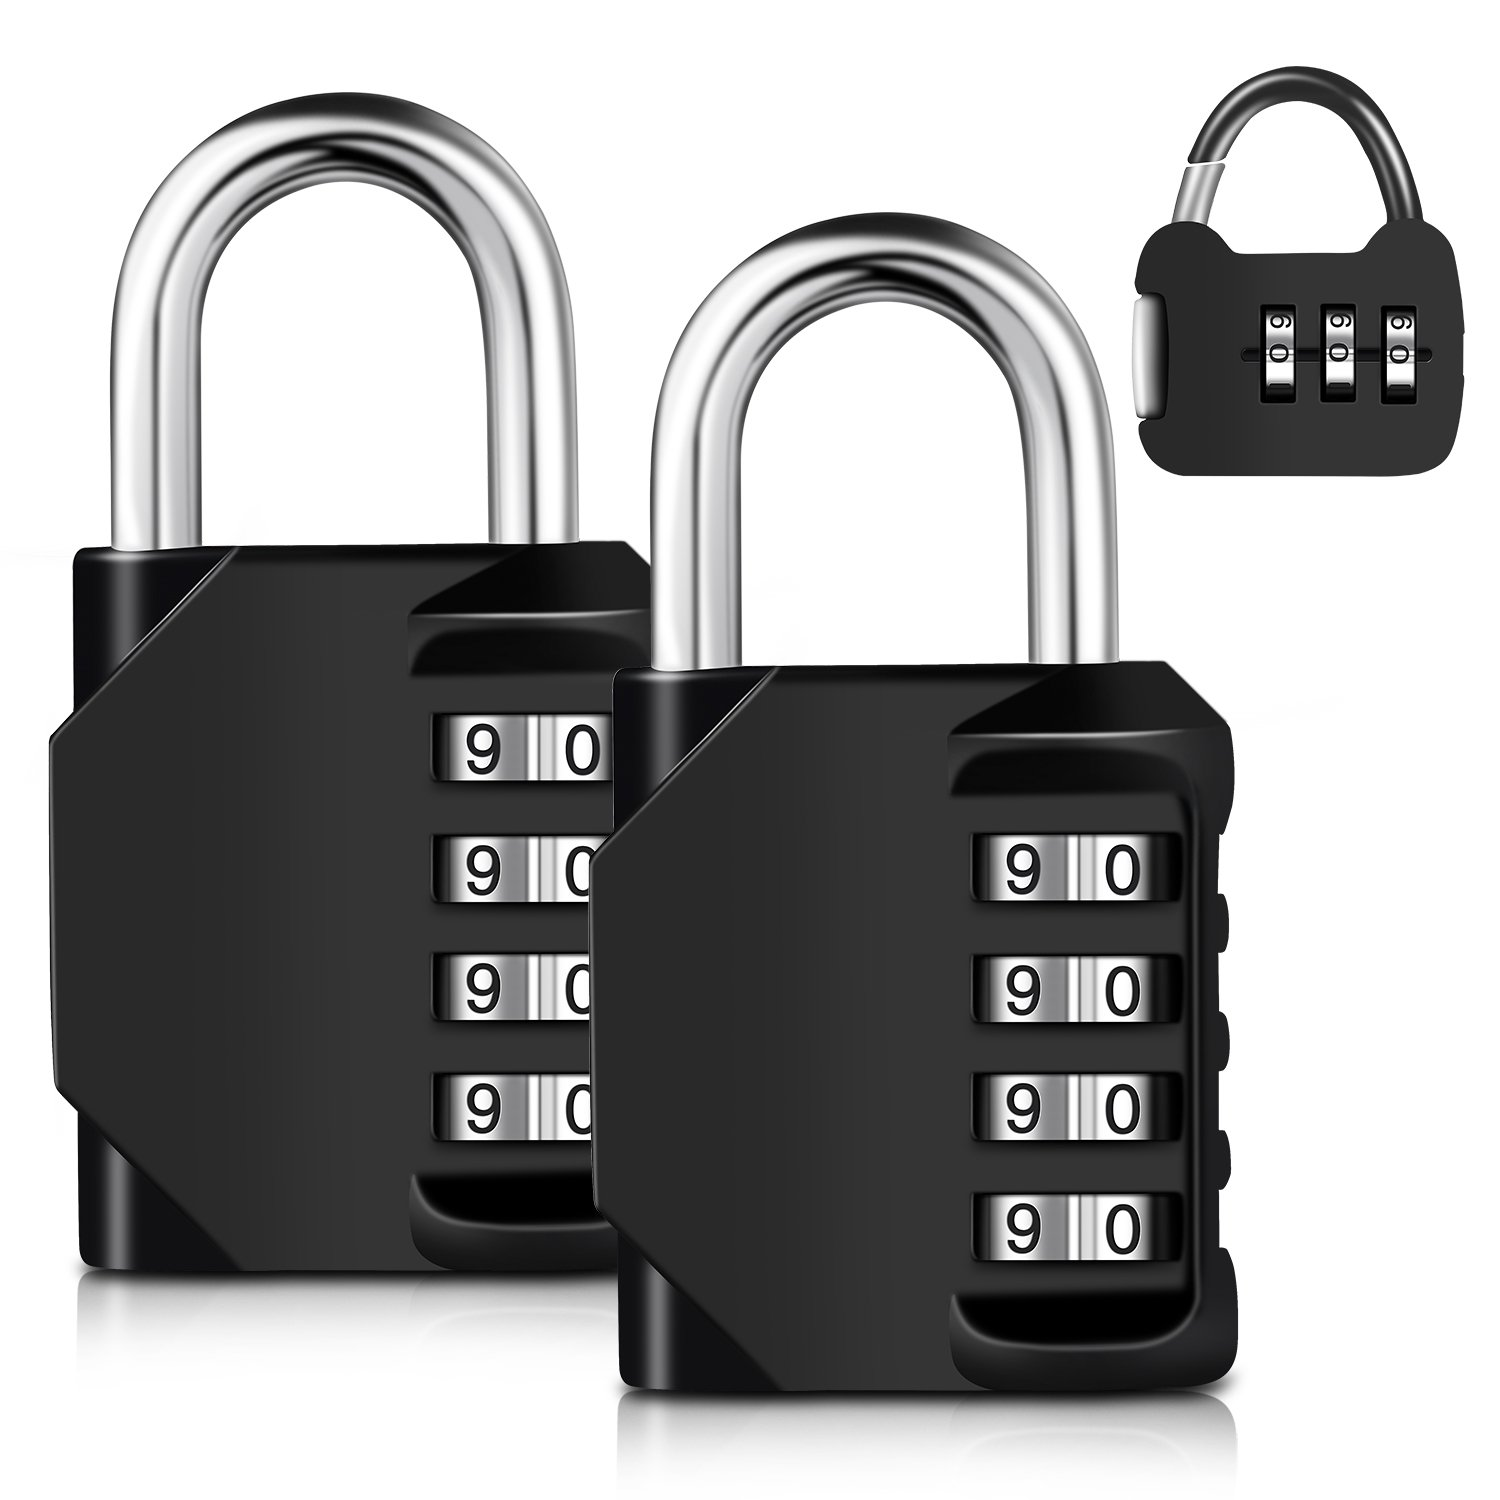 3-Pack 4-Digit Weatherproof Combination Padlocks, 2-Pack for School, Employee, Outdoor, Gym & Sports Locker, Cabinet & Storage with FREE Mini 1-pack, Resettable By Adoric